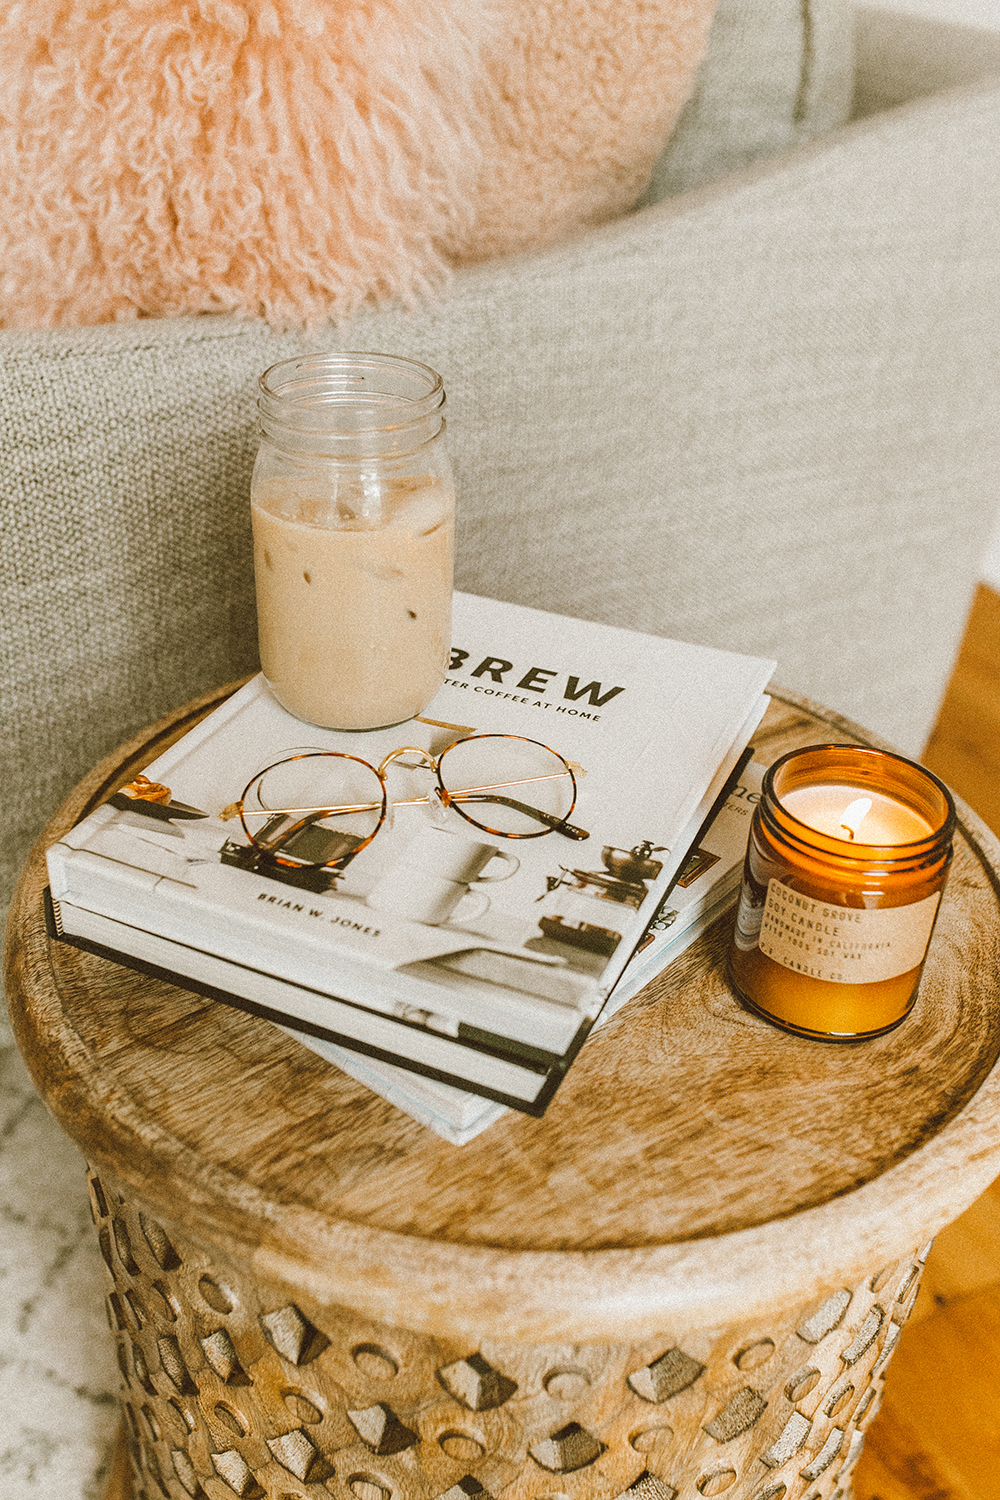 livvyland blog olivia watson austin texas lifestyle blog urban outfitters home decor bohemian cozy 5 - A Few Cozy Decor Updates